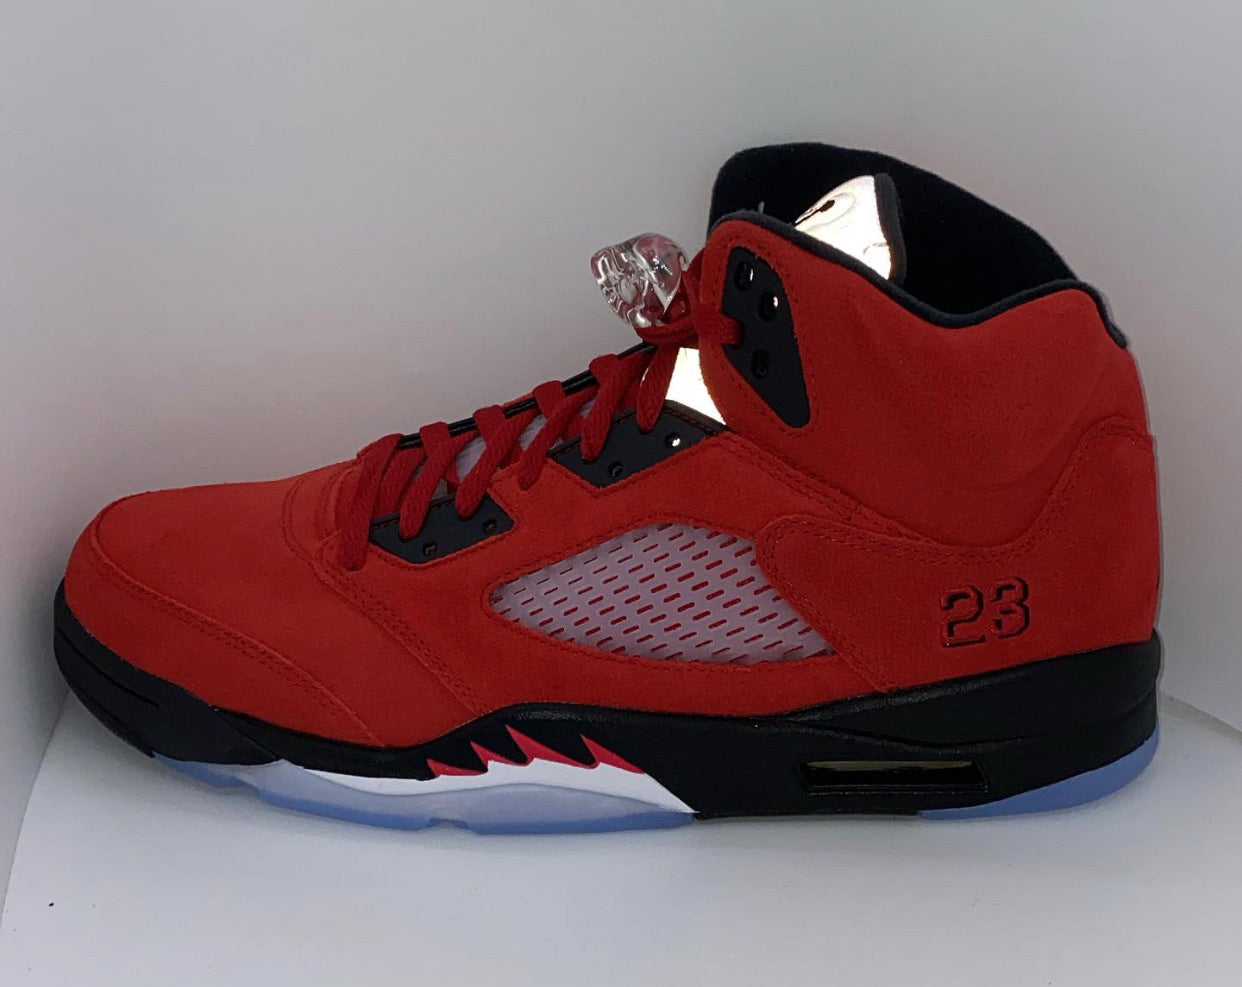 Jordan Retro 5 Raging Bull